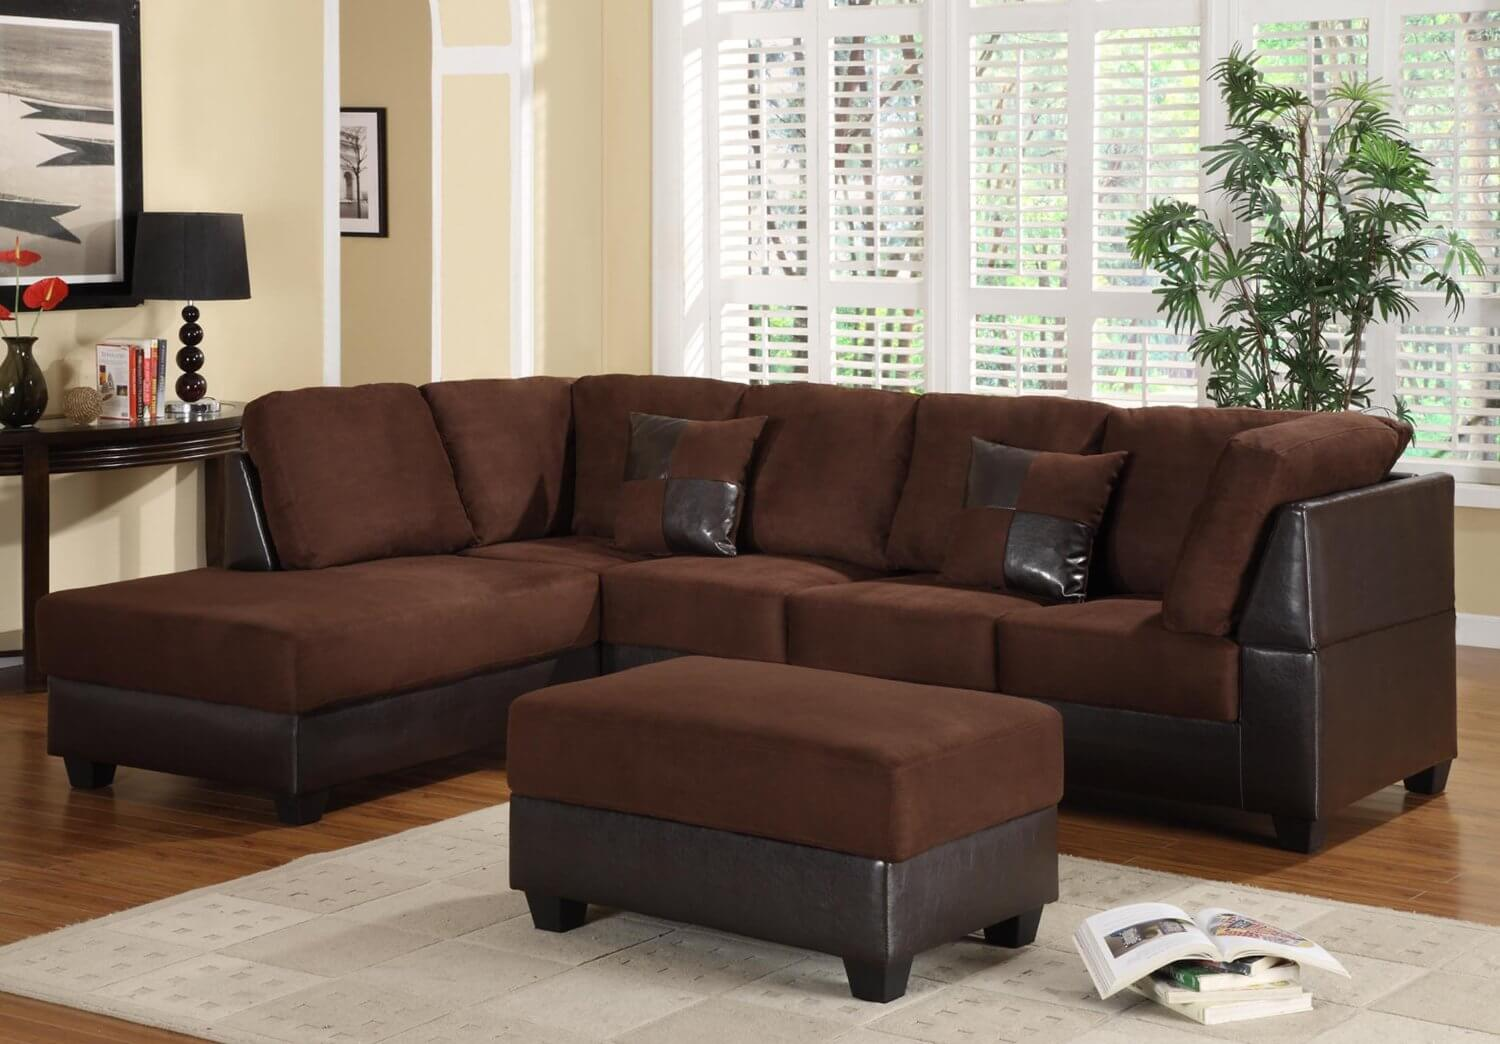 Sectional Sofa Sleepers On Sale